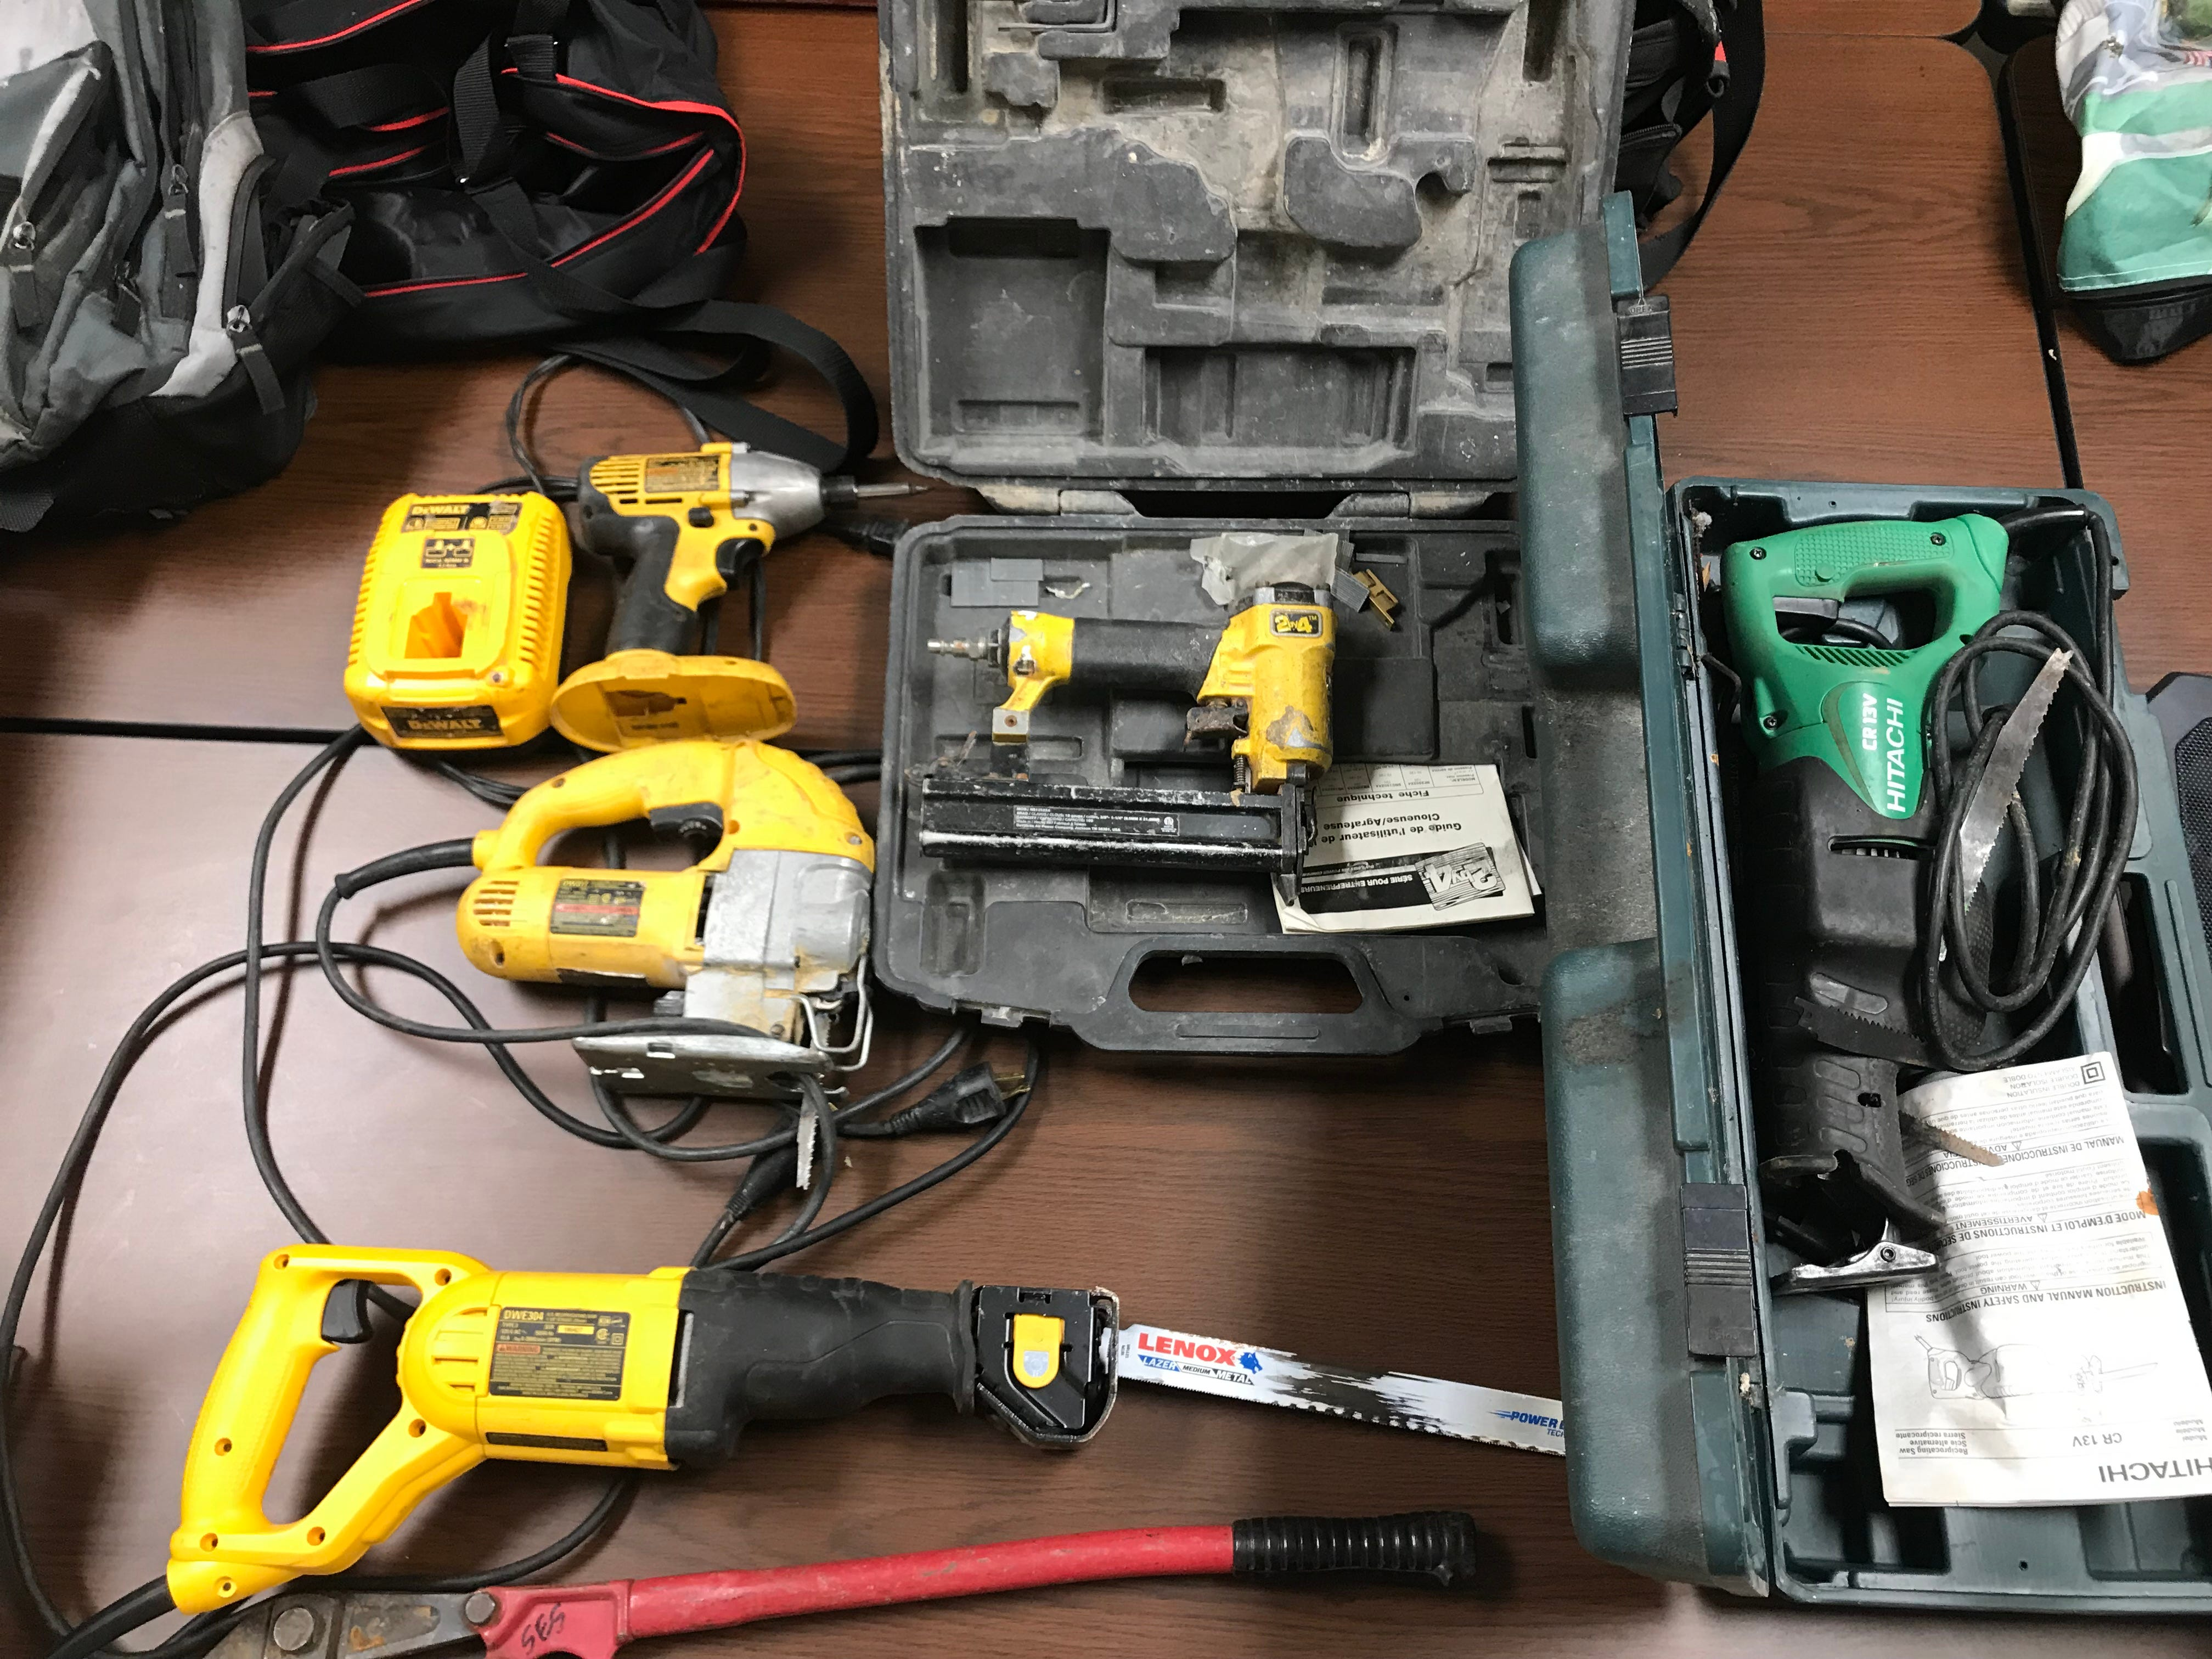 Various power tools were among hundreds of items Madison County Sheriff's Office recovered from a theft ring believed to be targeting grieving families and others throughout West Tennessee.